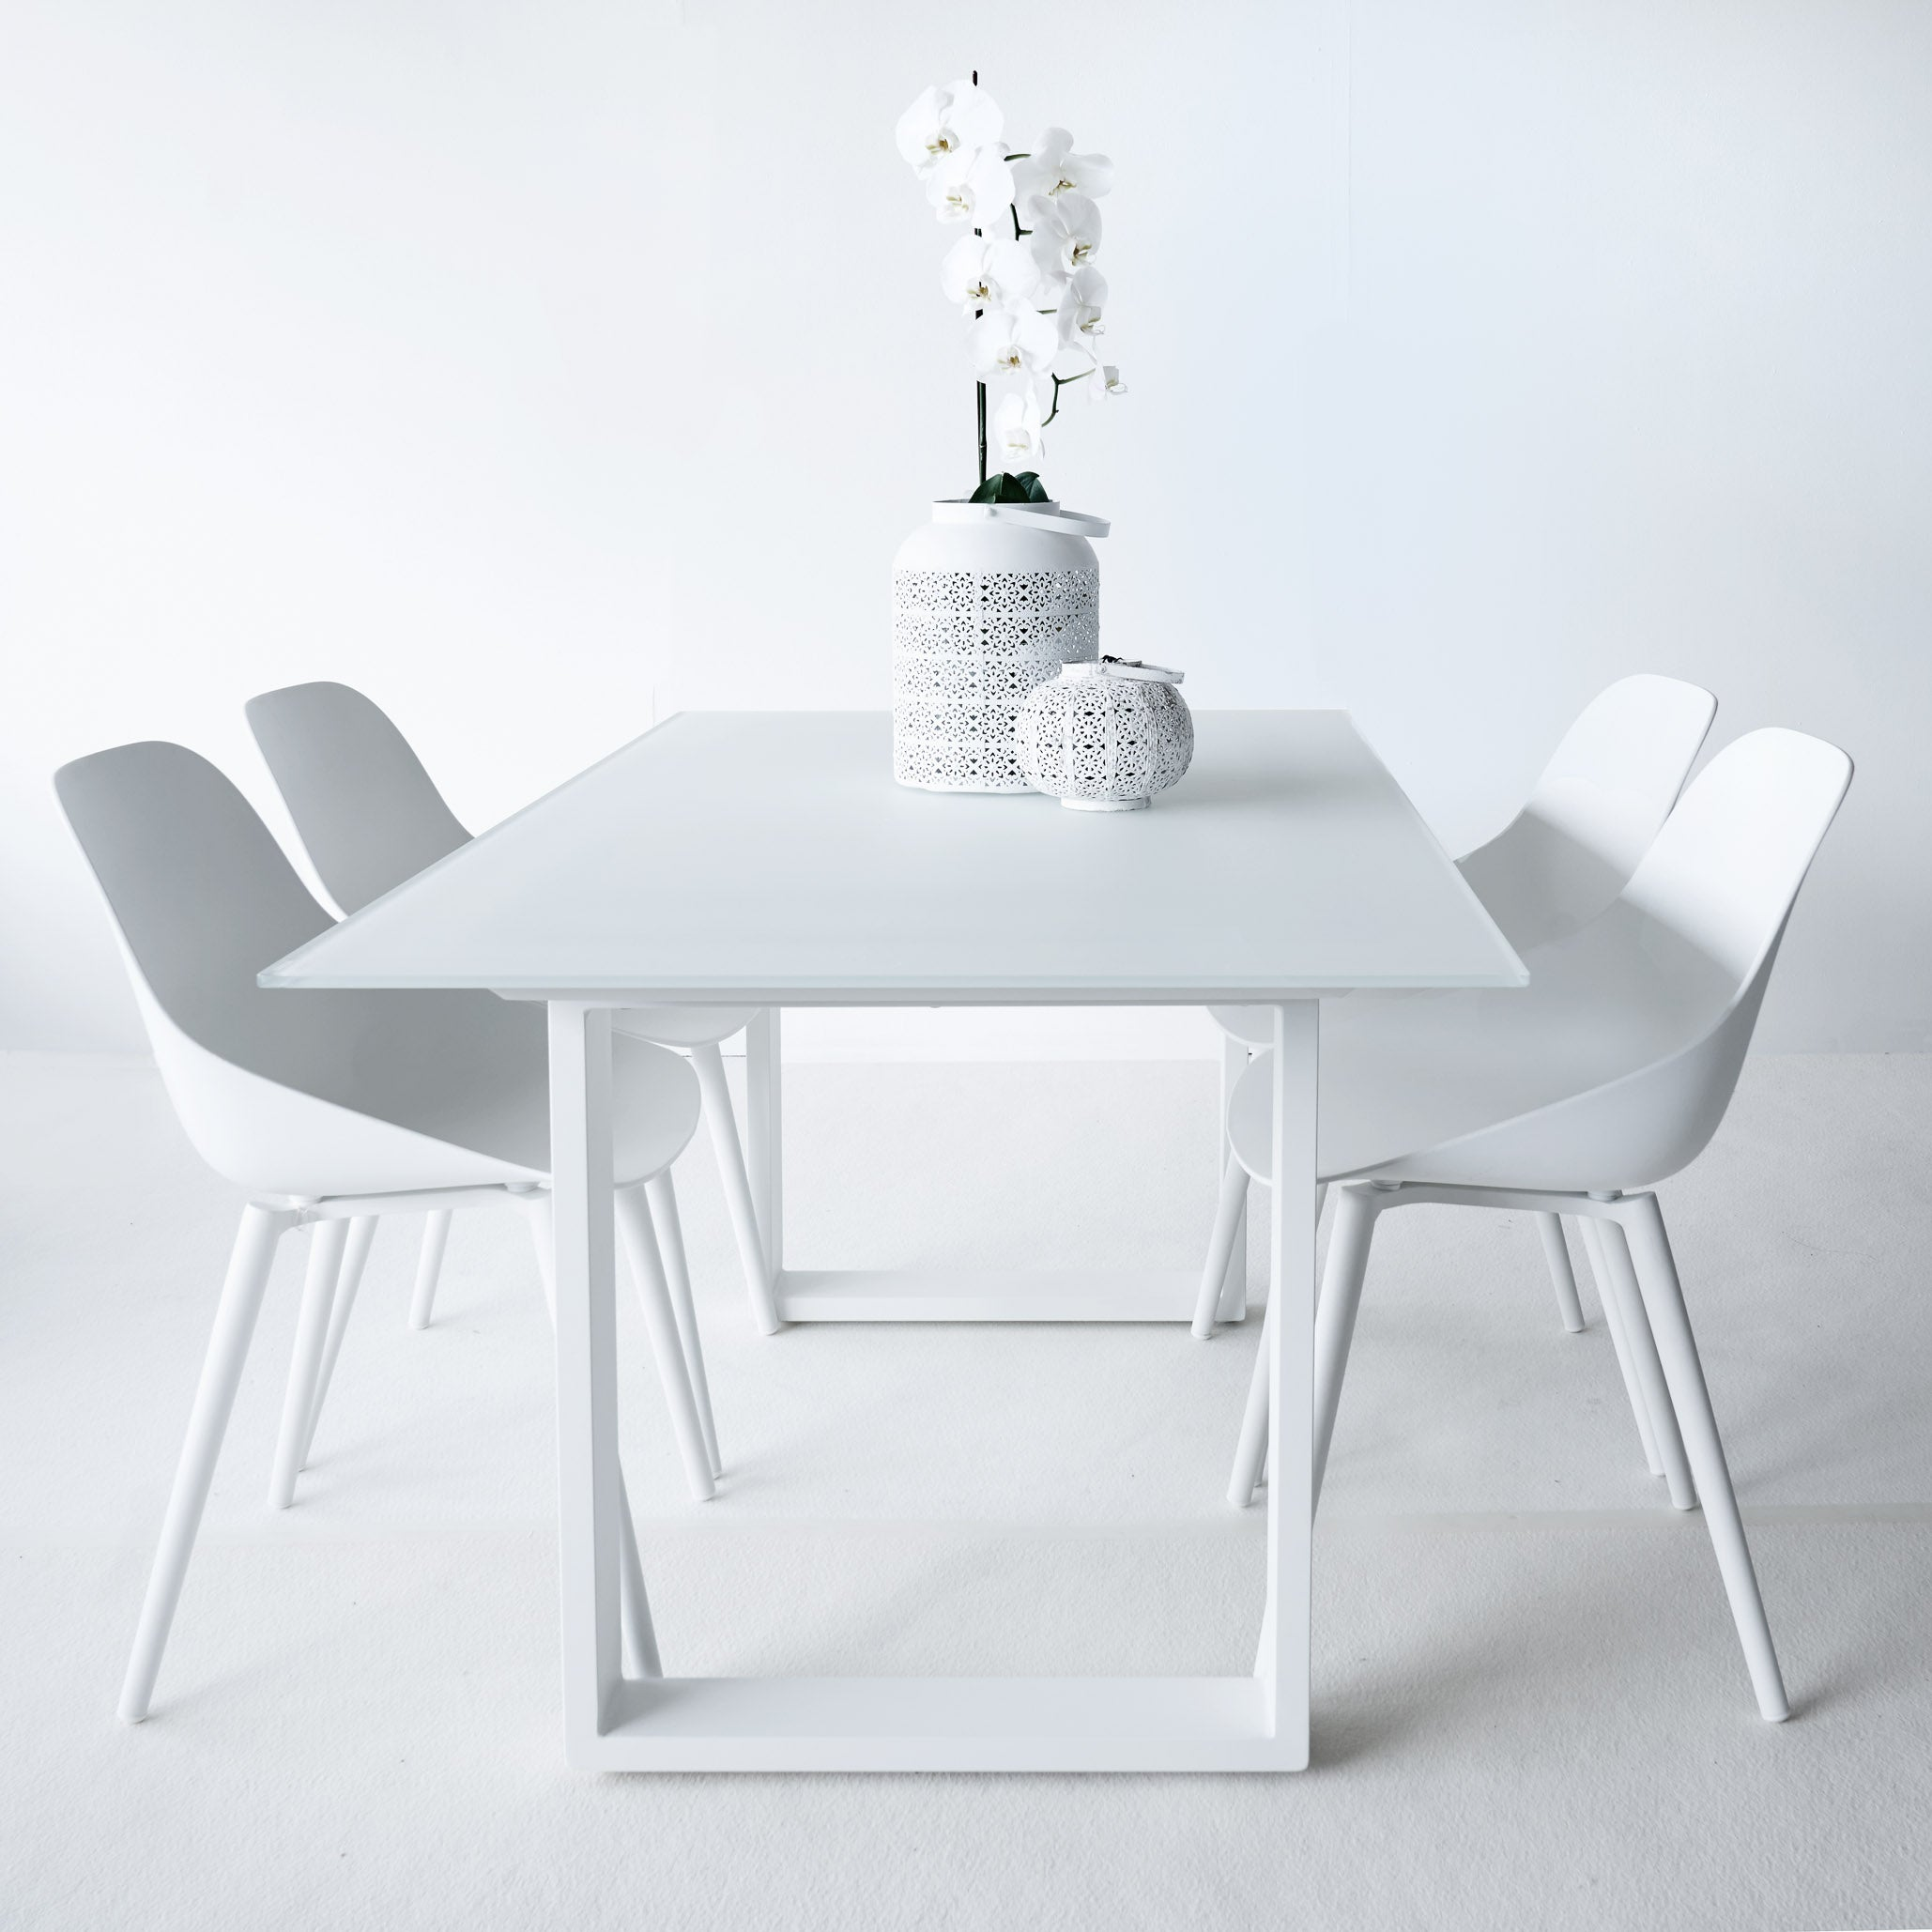 Outdoor Dining Table | Ely - White / White Top 8 Seater